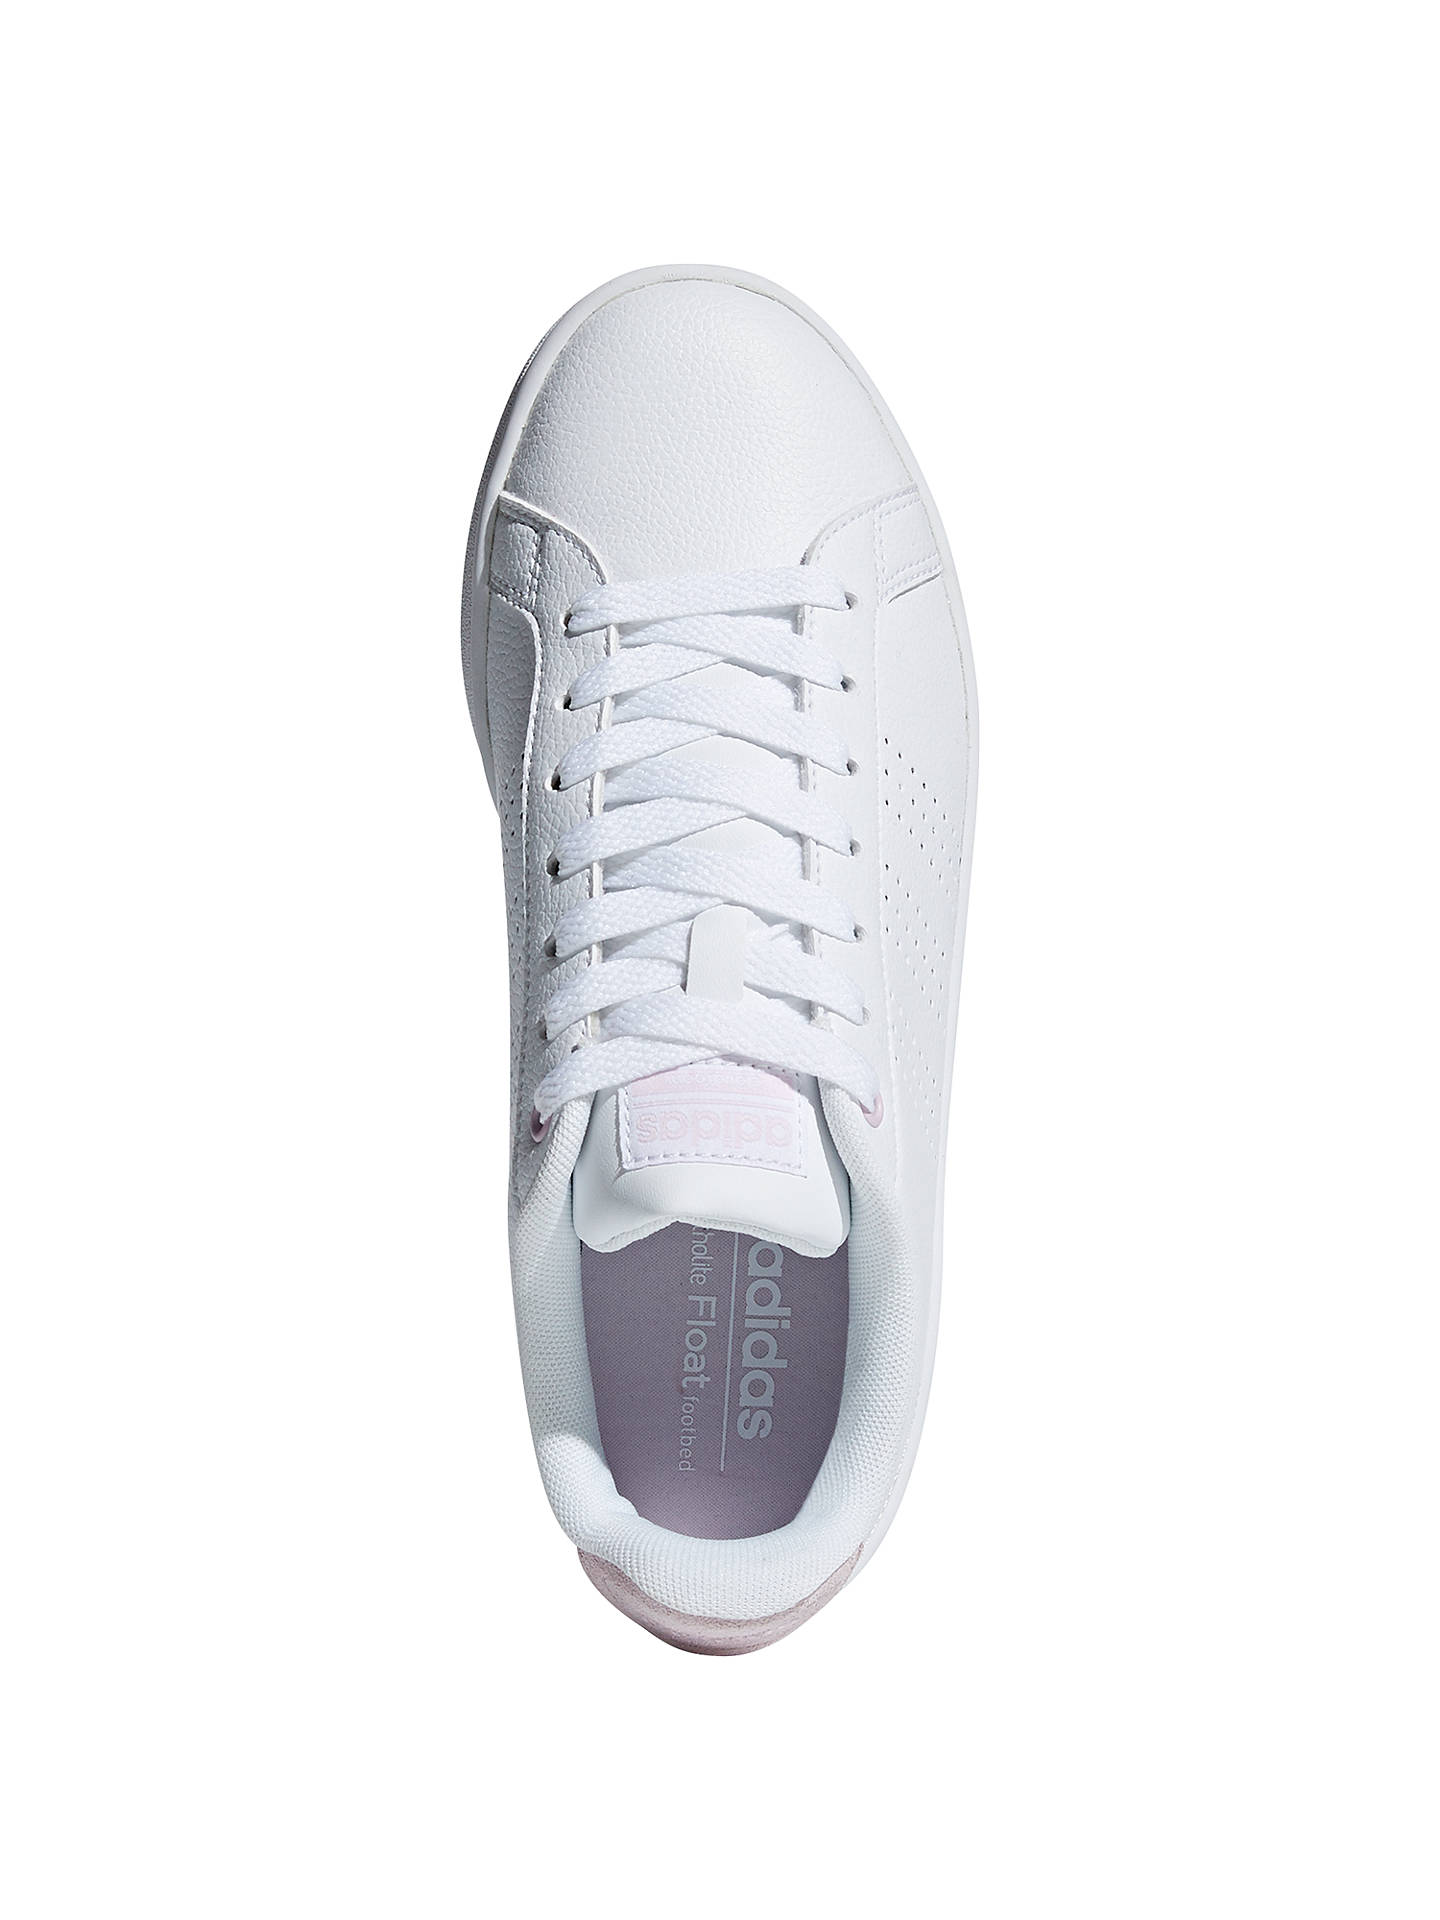 Buy adidas Neo Cloudfoam Advantage Women's Trainers, White/Pink, 4 Online at johnlewis.com